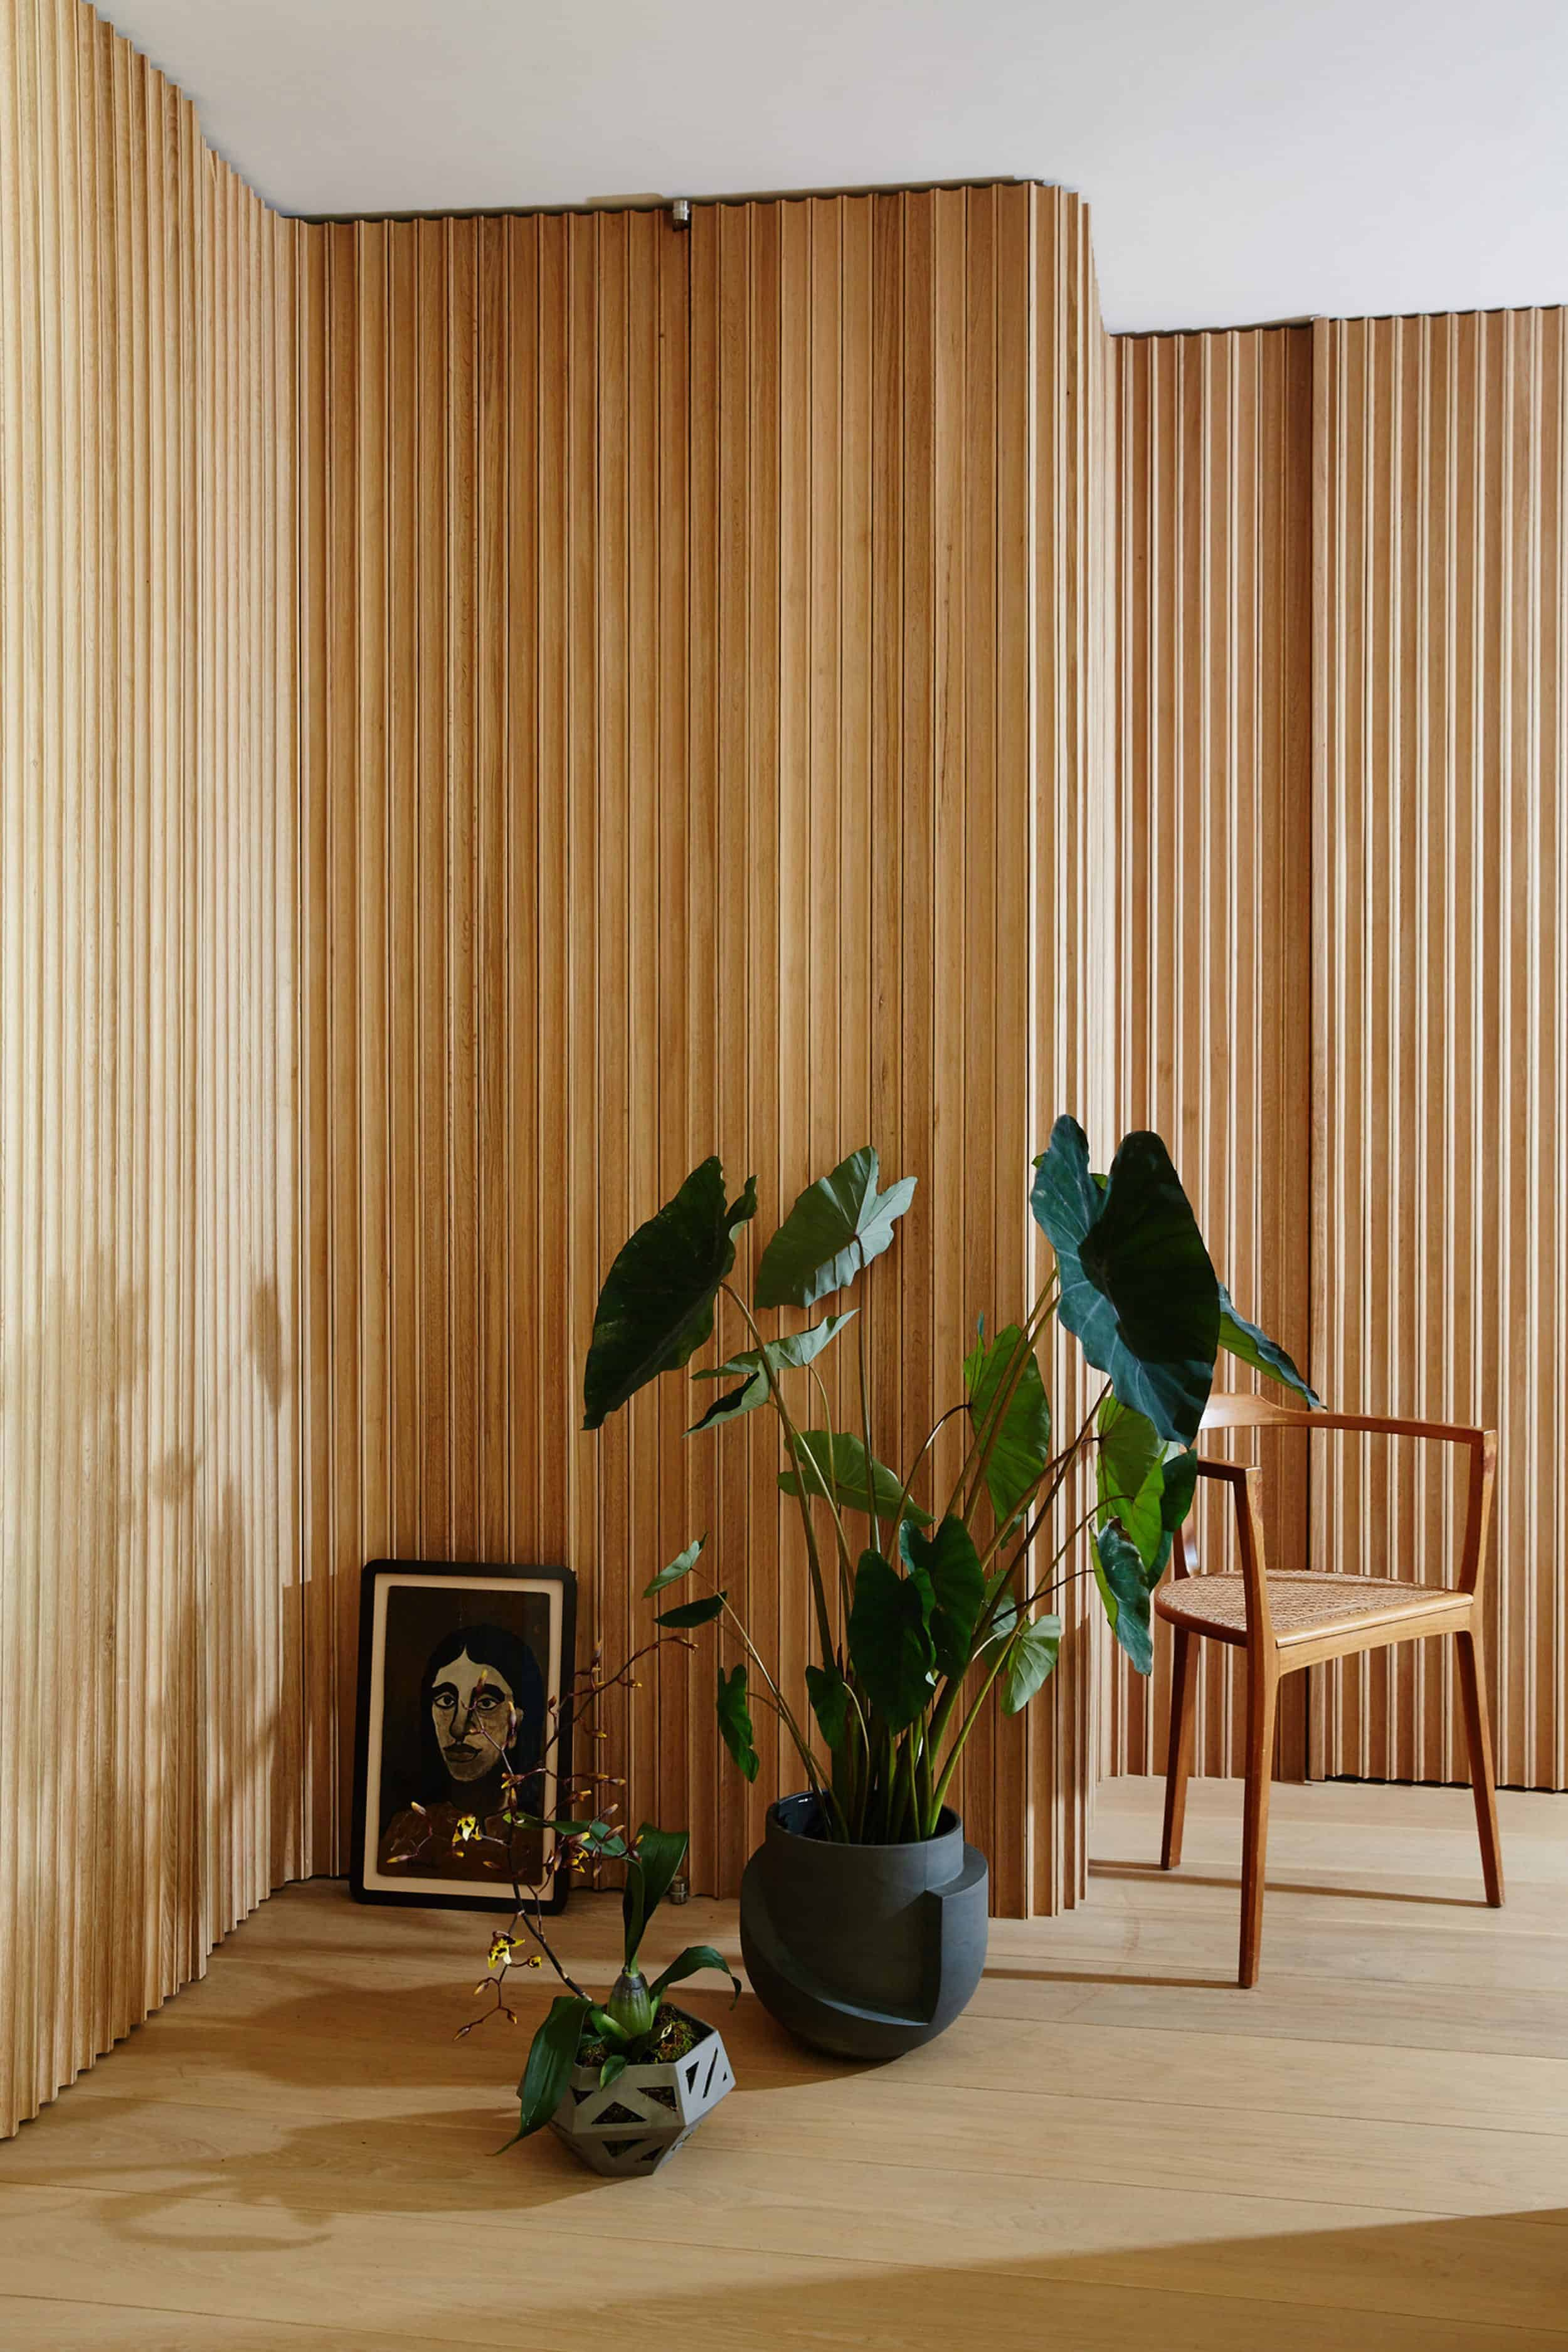 Emily Henderson How To Add Character To Basic Architecture Walls Celings Wood Unfinished Raw 111